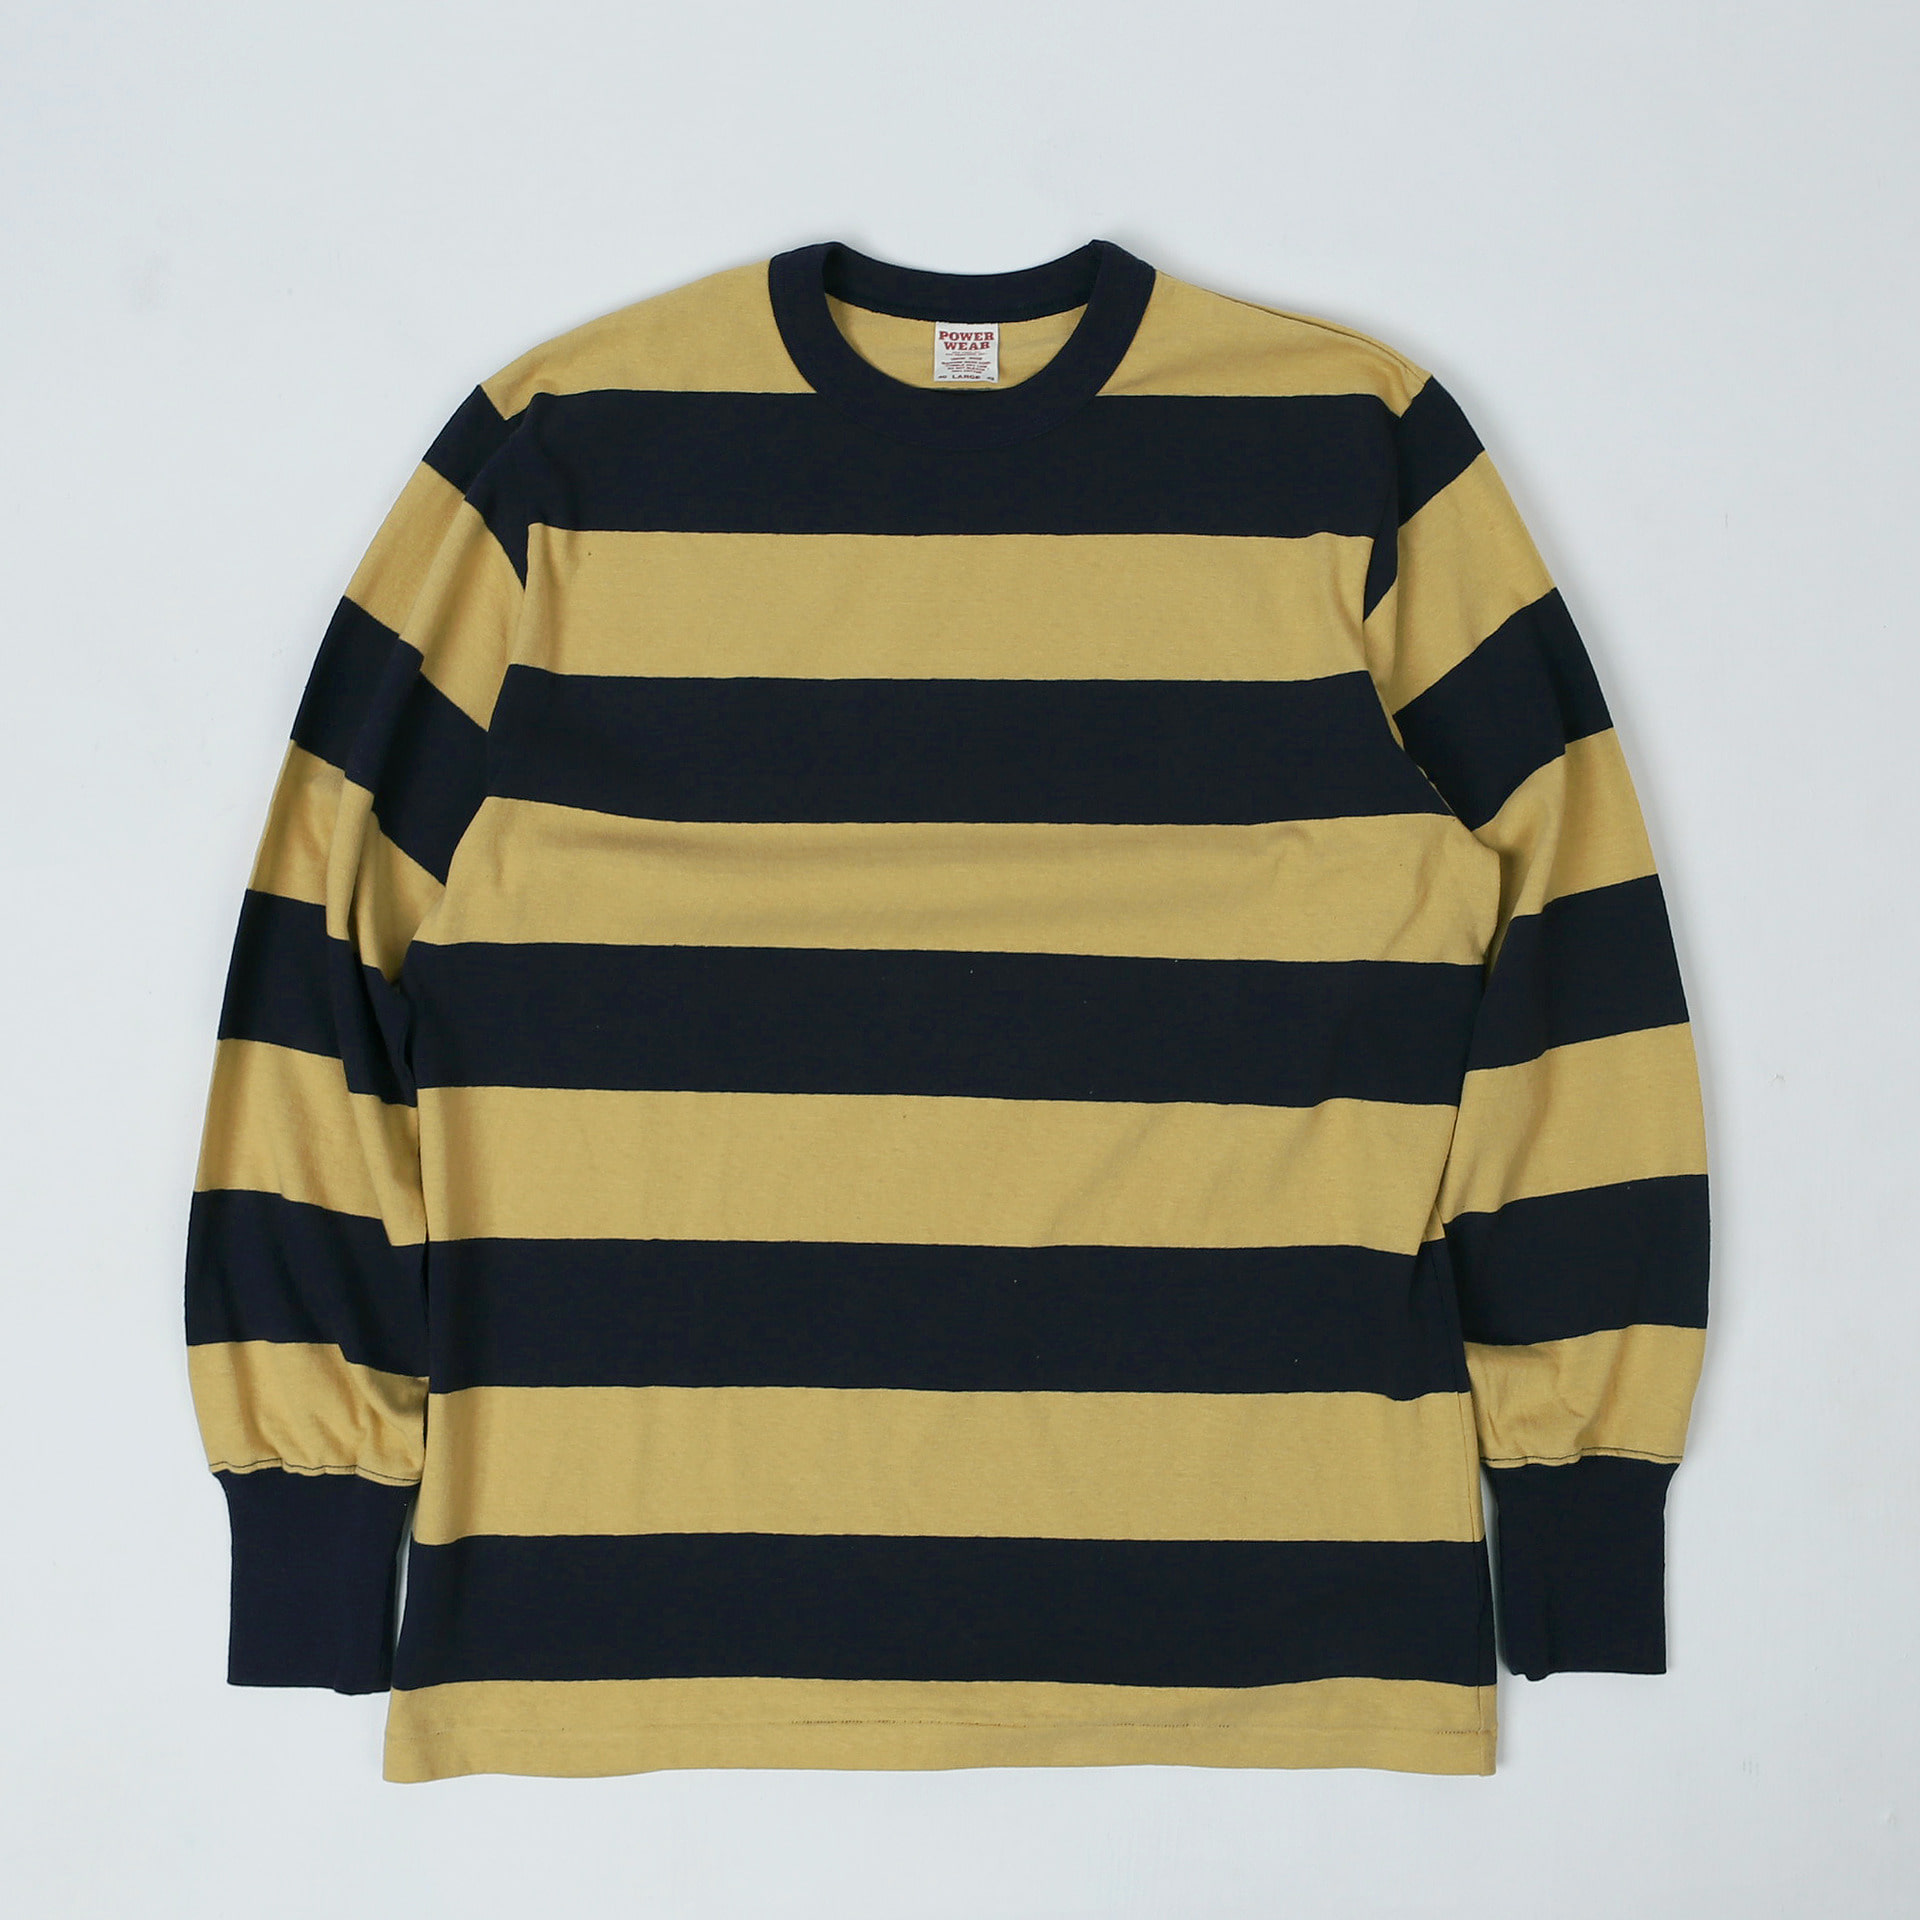 "[Power Wear]Long Sleeve T-Shirt""HORIZONTAL STRIPED""(Sand Beige × Old Navy)"